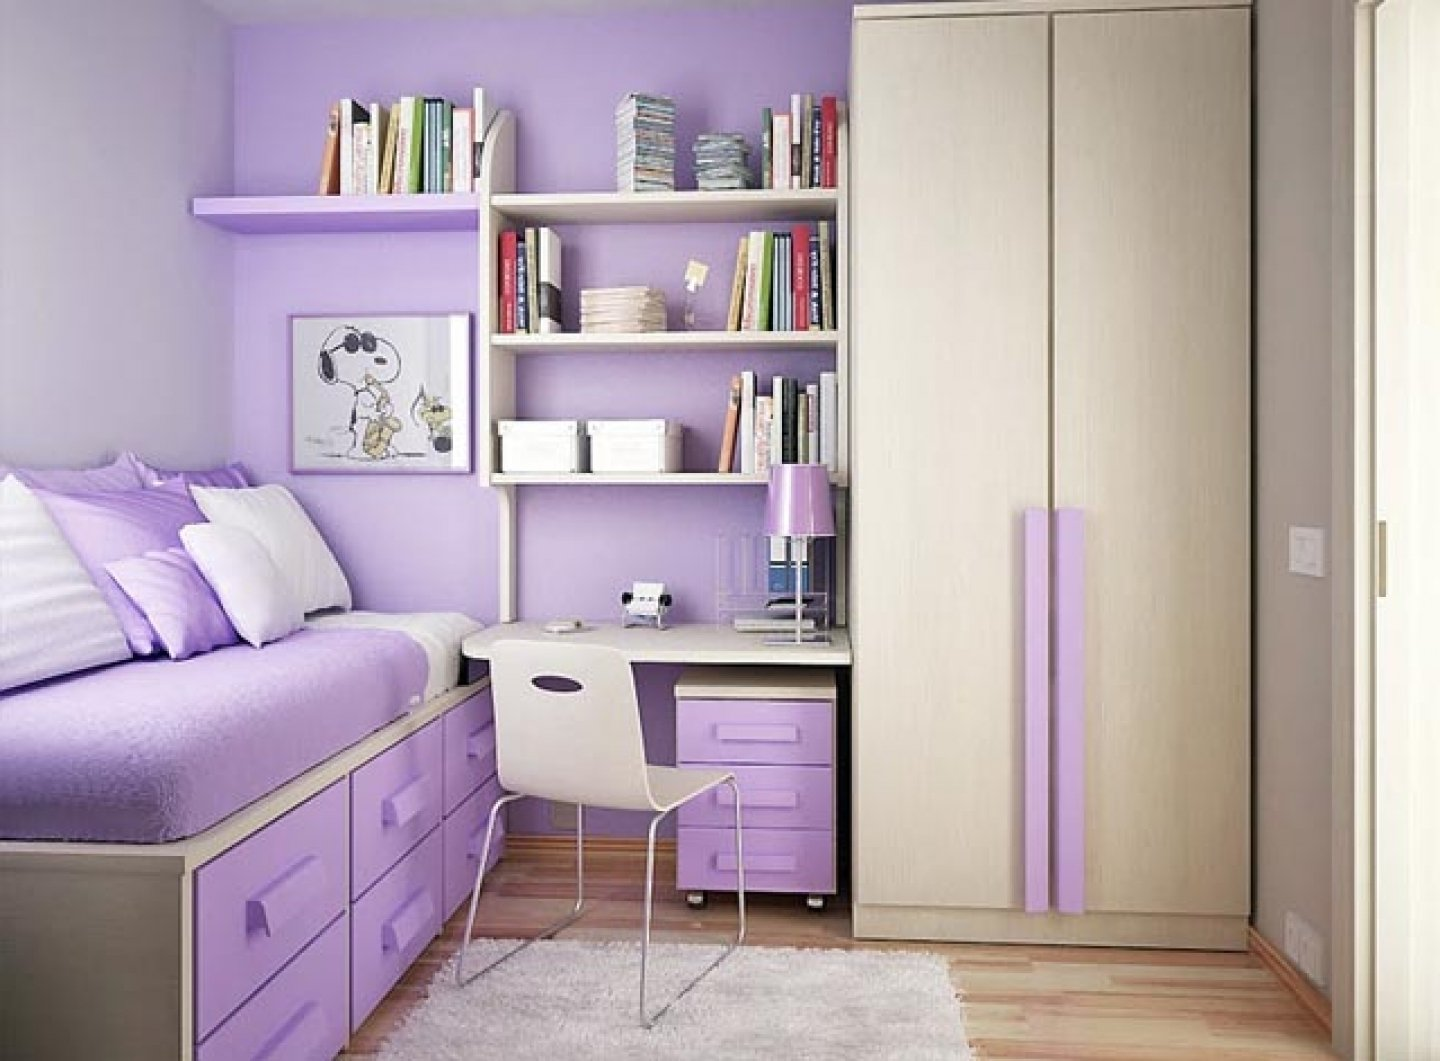 10 Elegant Cute Bedroom Ideas For Small Rooms teenage girl bedroom ideas for small rooms unique design purple 1